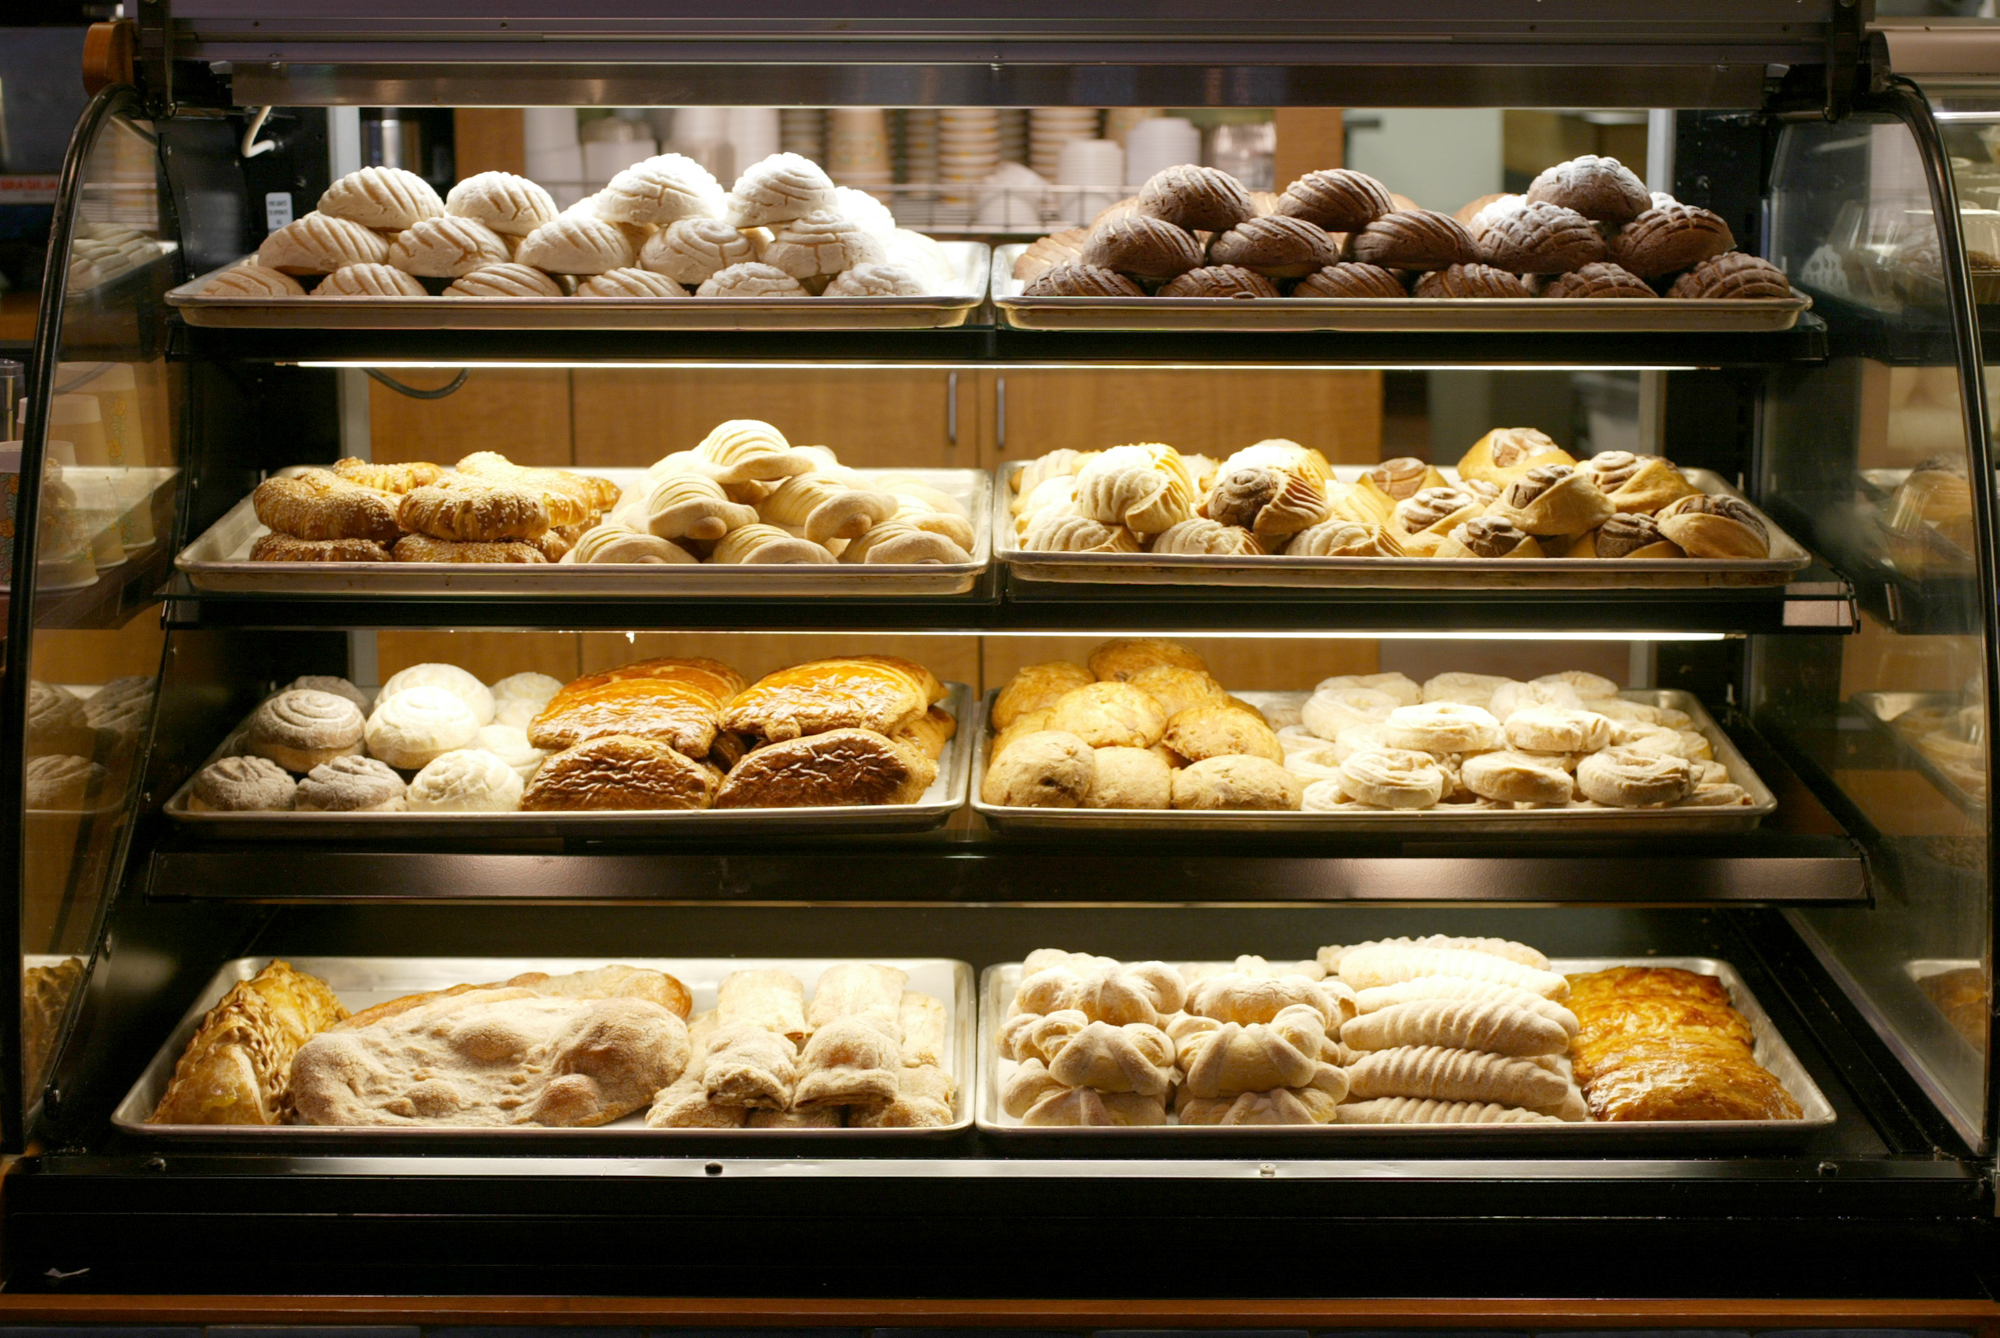 The story is about the best Latino bakeries around town. They specialize in pan dulce – sweet bread